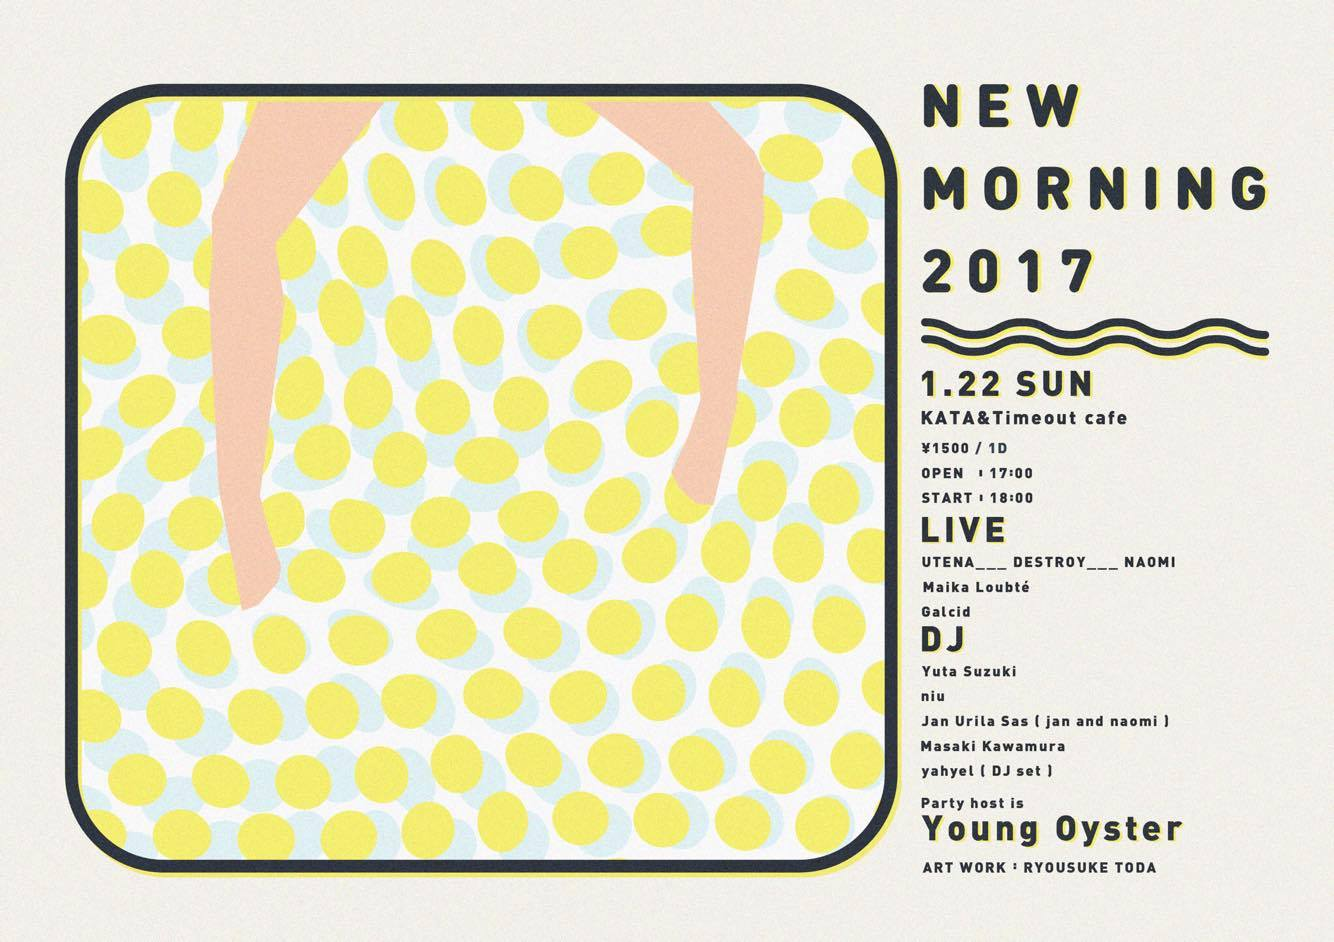 New Morning 2017